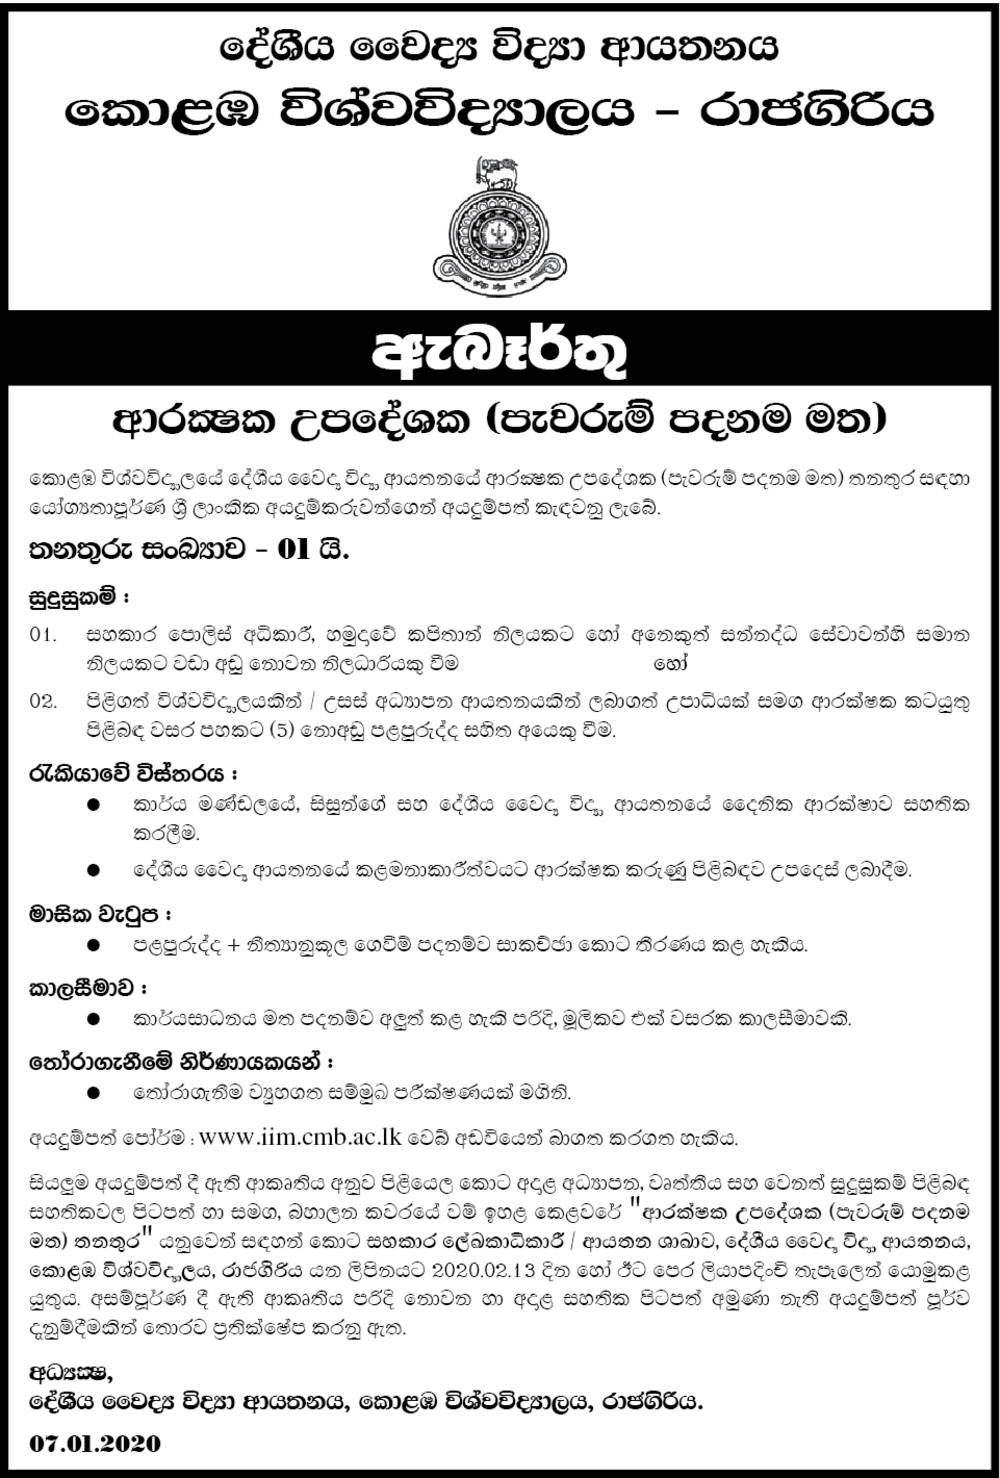 Security Consultant - Institute of Indigenous Medicine - University of Colombo